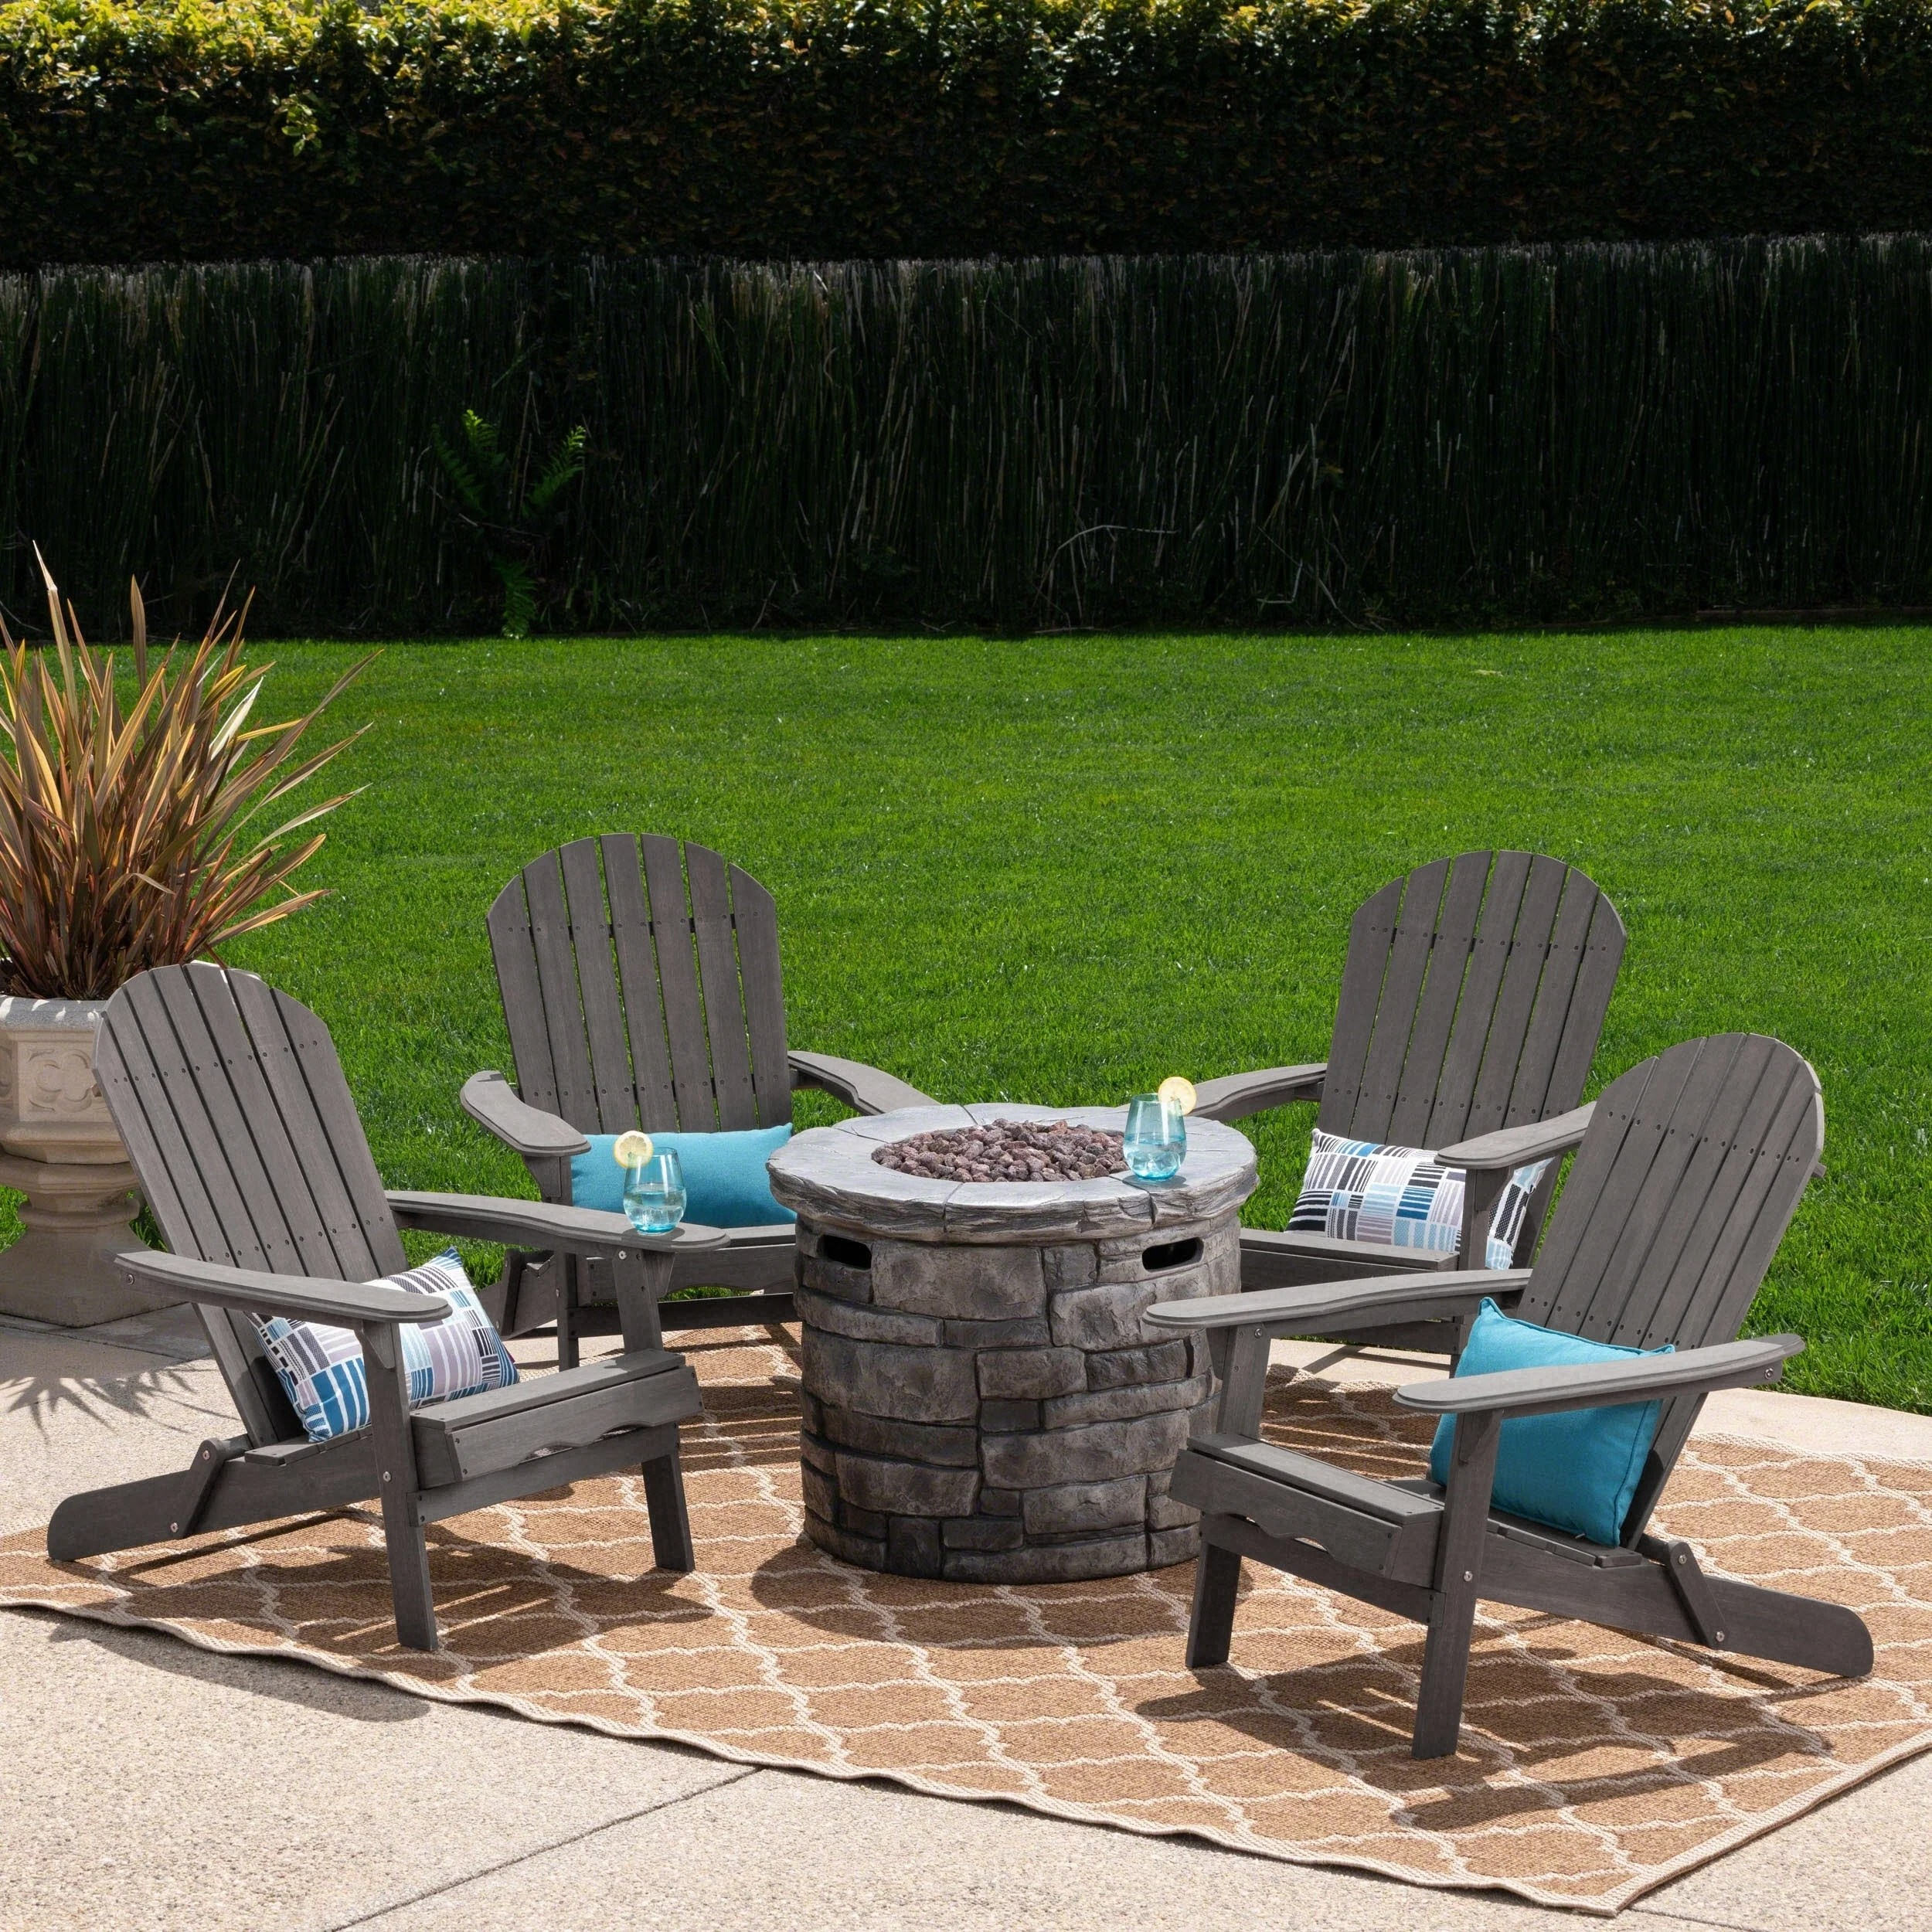 Adirondack Chair Set Maison Outdoor 5 Piece Adirondack Chair Set By Christopher Knight Home